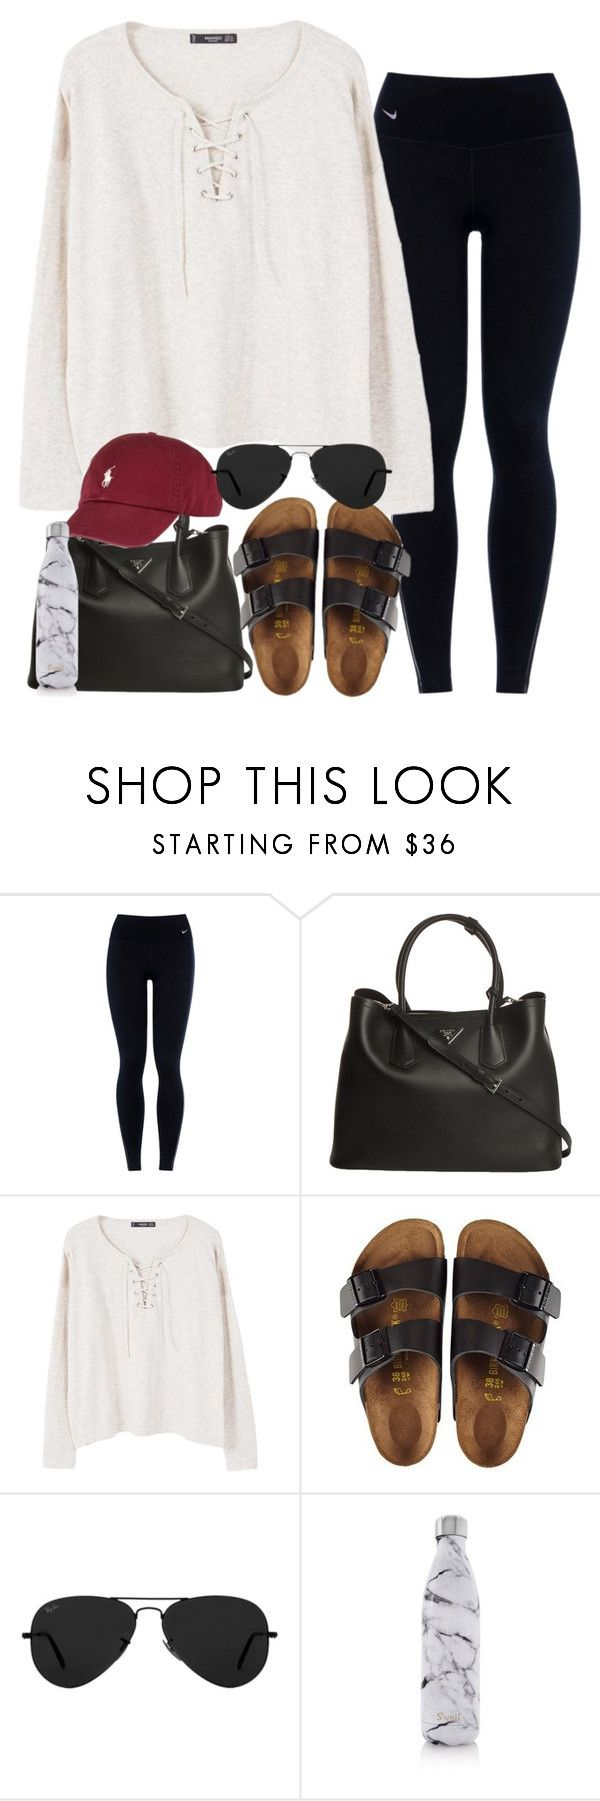 """""""Untitled #294"""" by valerienwashington ❤ liked on Polyvore featuring NIKE, Prada, MANGO, Birkenstock, Ray-Ban and S'well"""